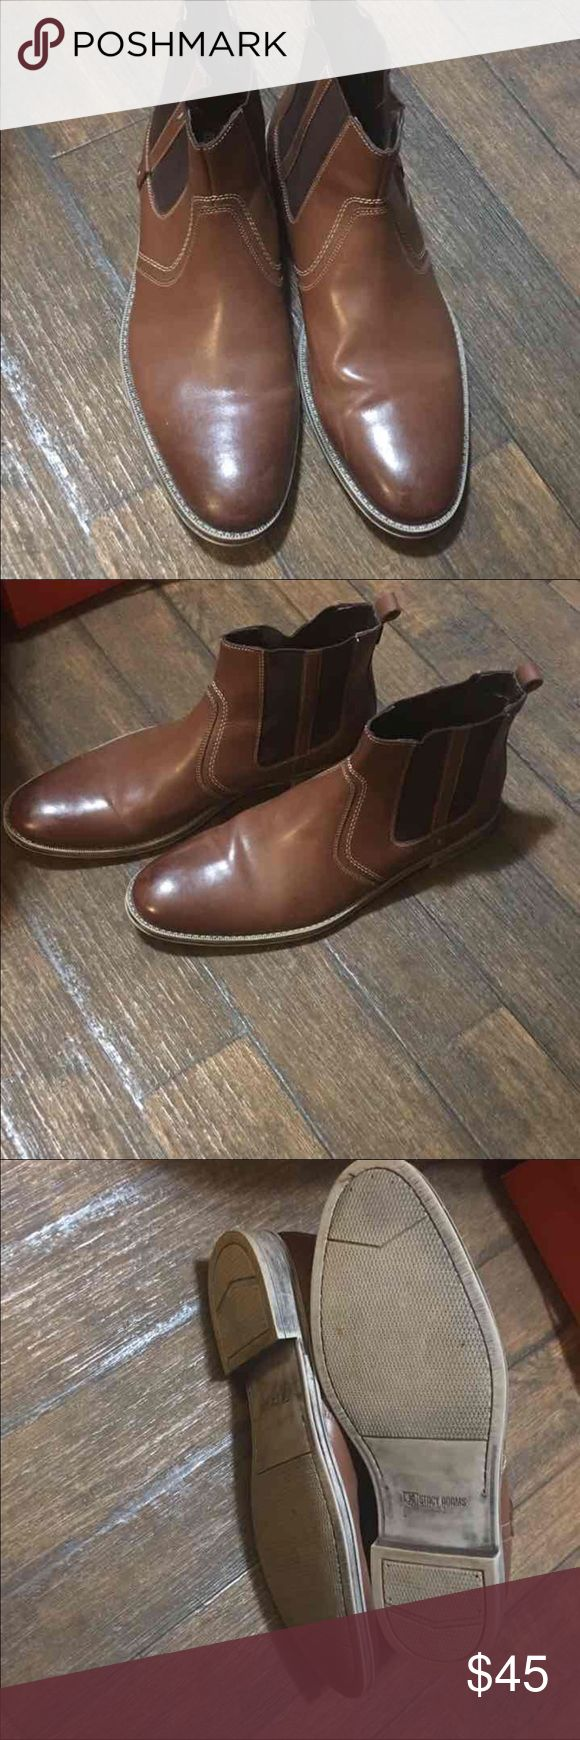 Stacey Adams Slip On Boots Mens, SZ  13 rarely worn ankle boots Open to offers stacey Adams Shoes Boots